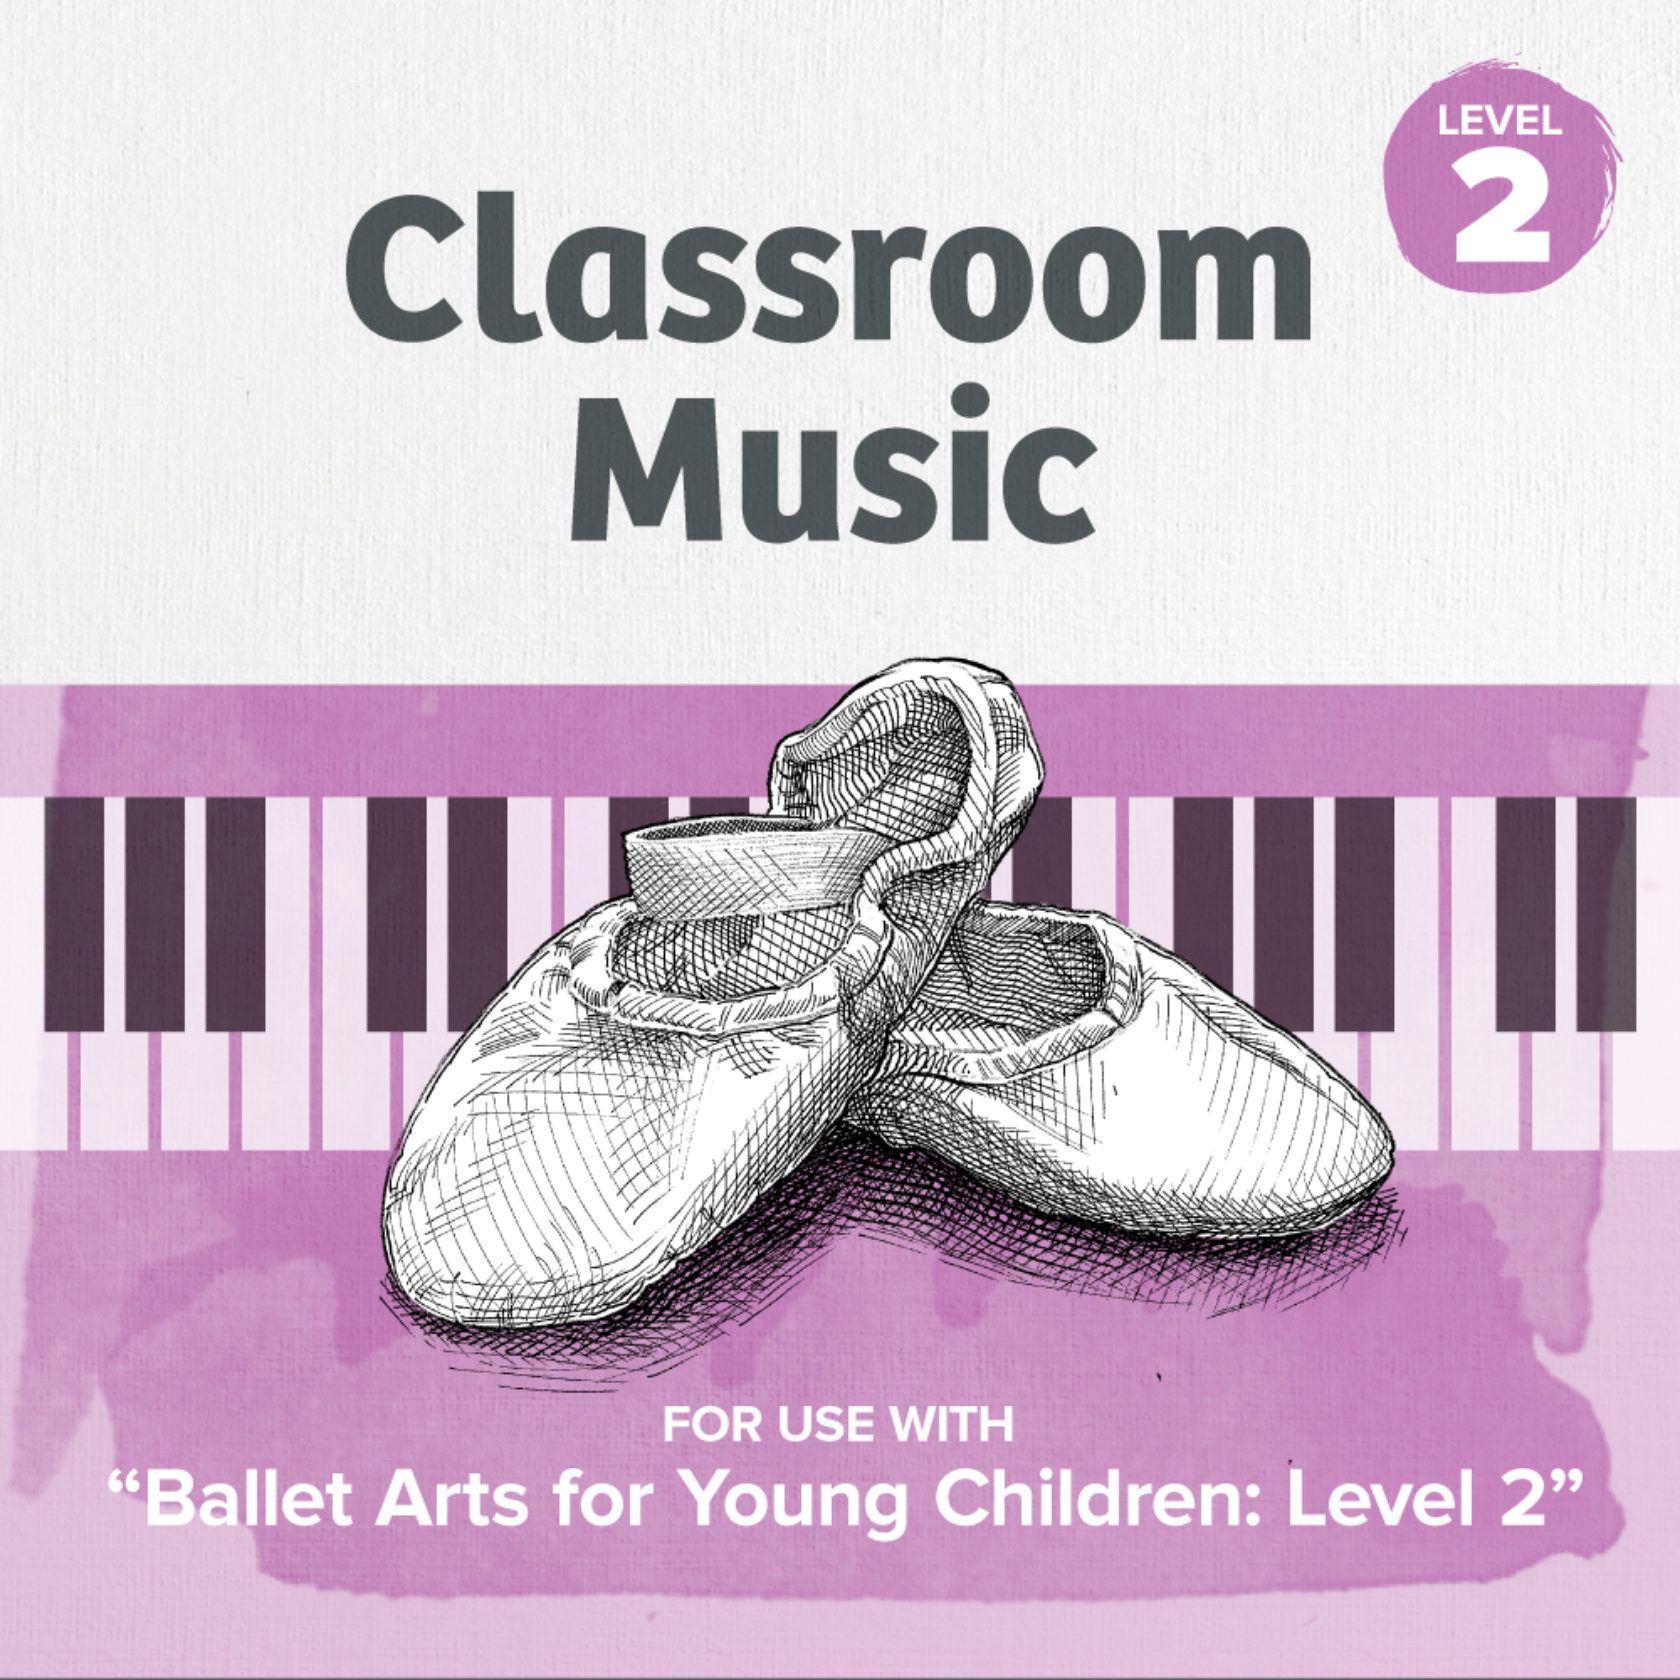 Music for Level 2 (Ages 4 & 5)